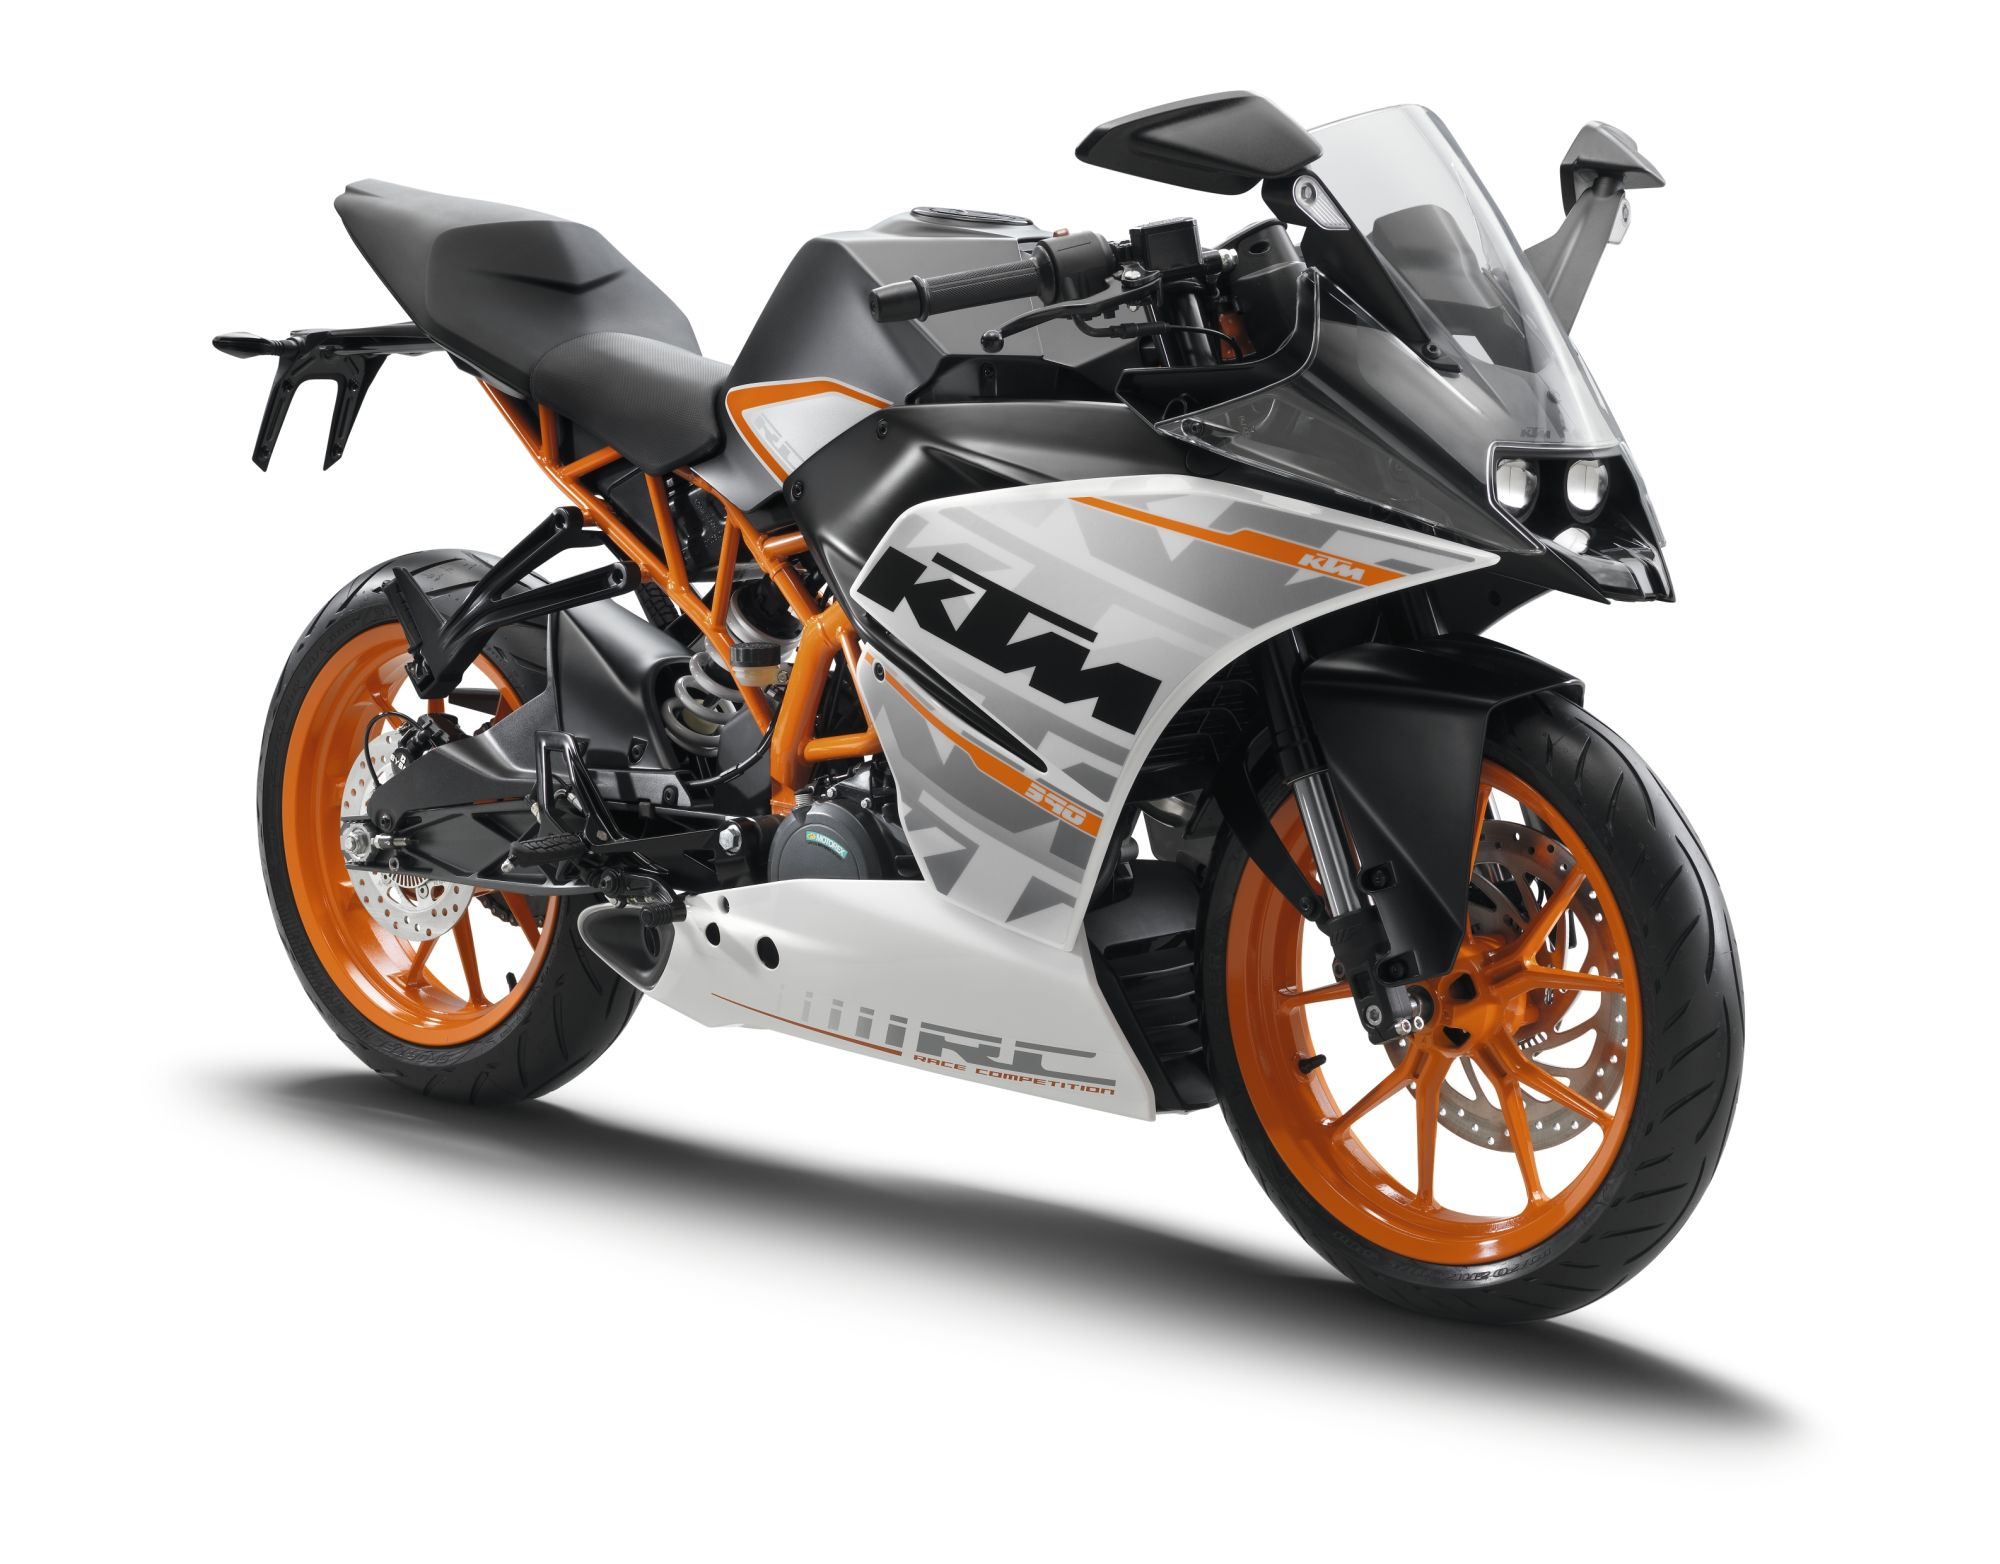 ktm rc 390 alle technischen daten zum modell rc 390 von ktm. Black Bedroom Furniture Sets. Home Design Ideas